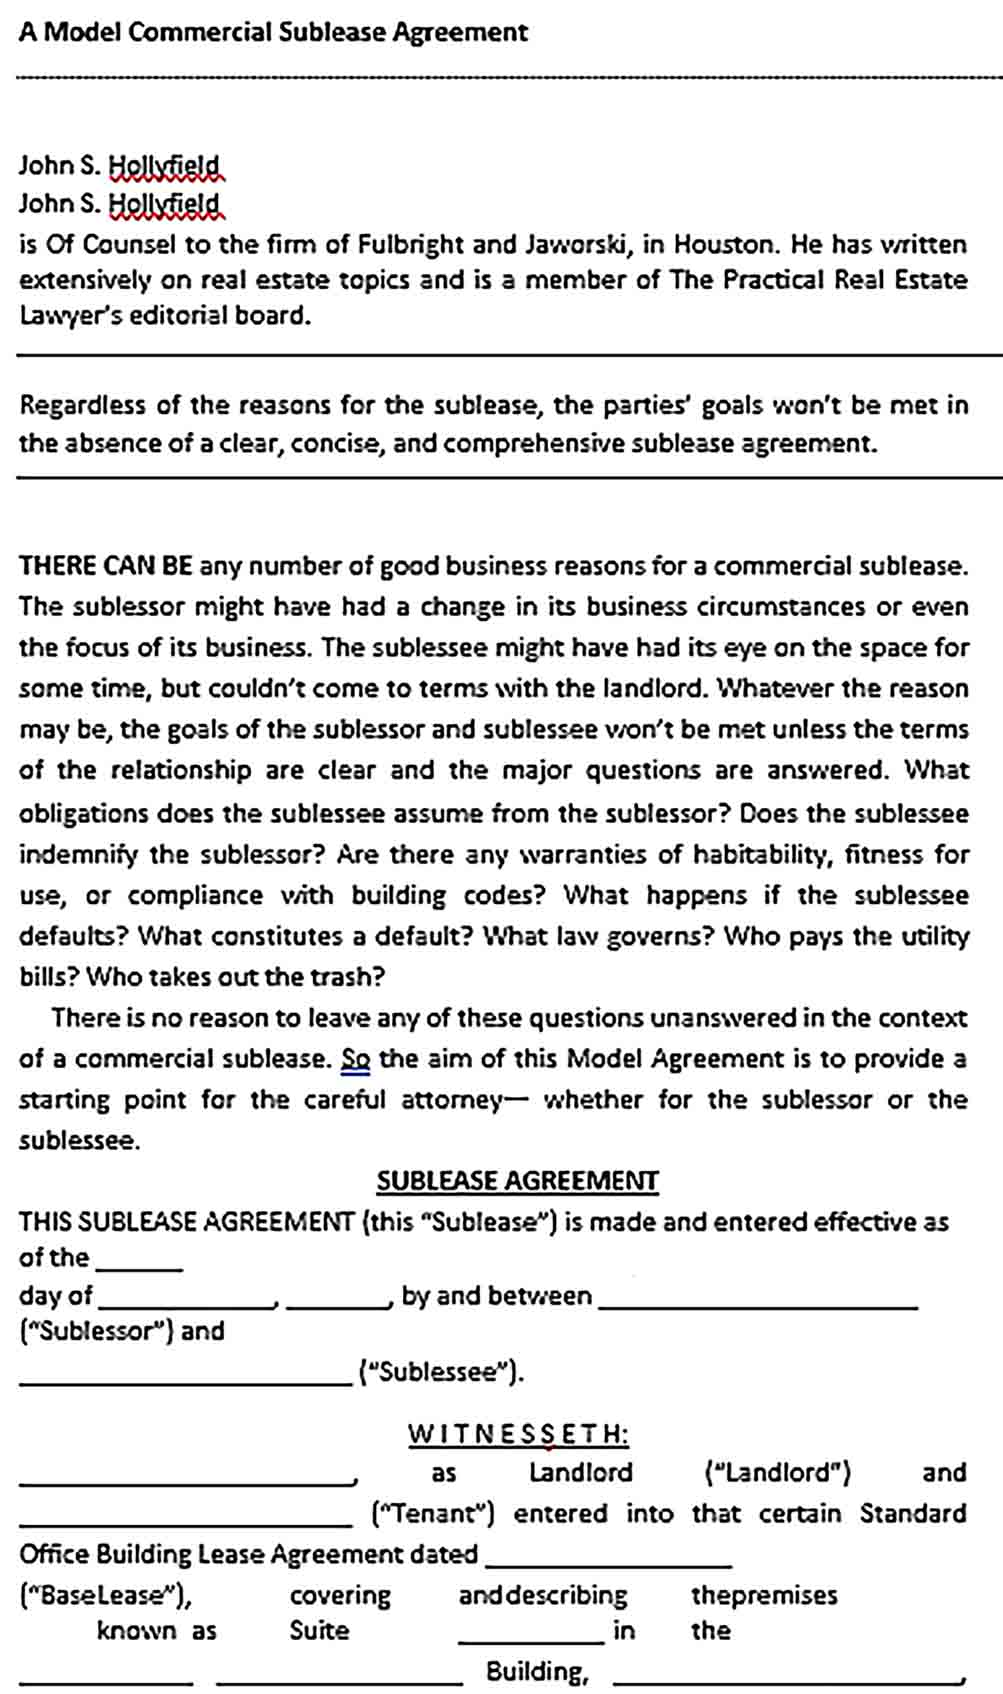 Sample Commercial Sublease Agreement